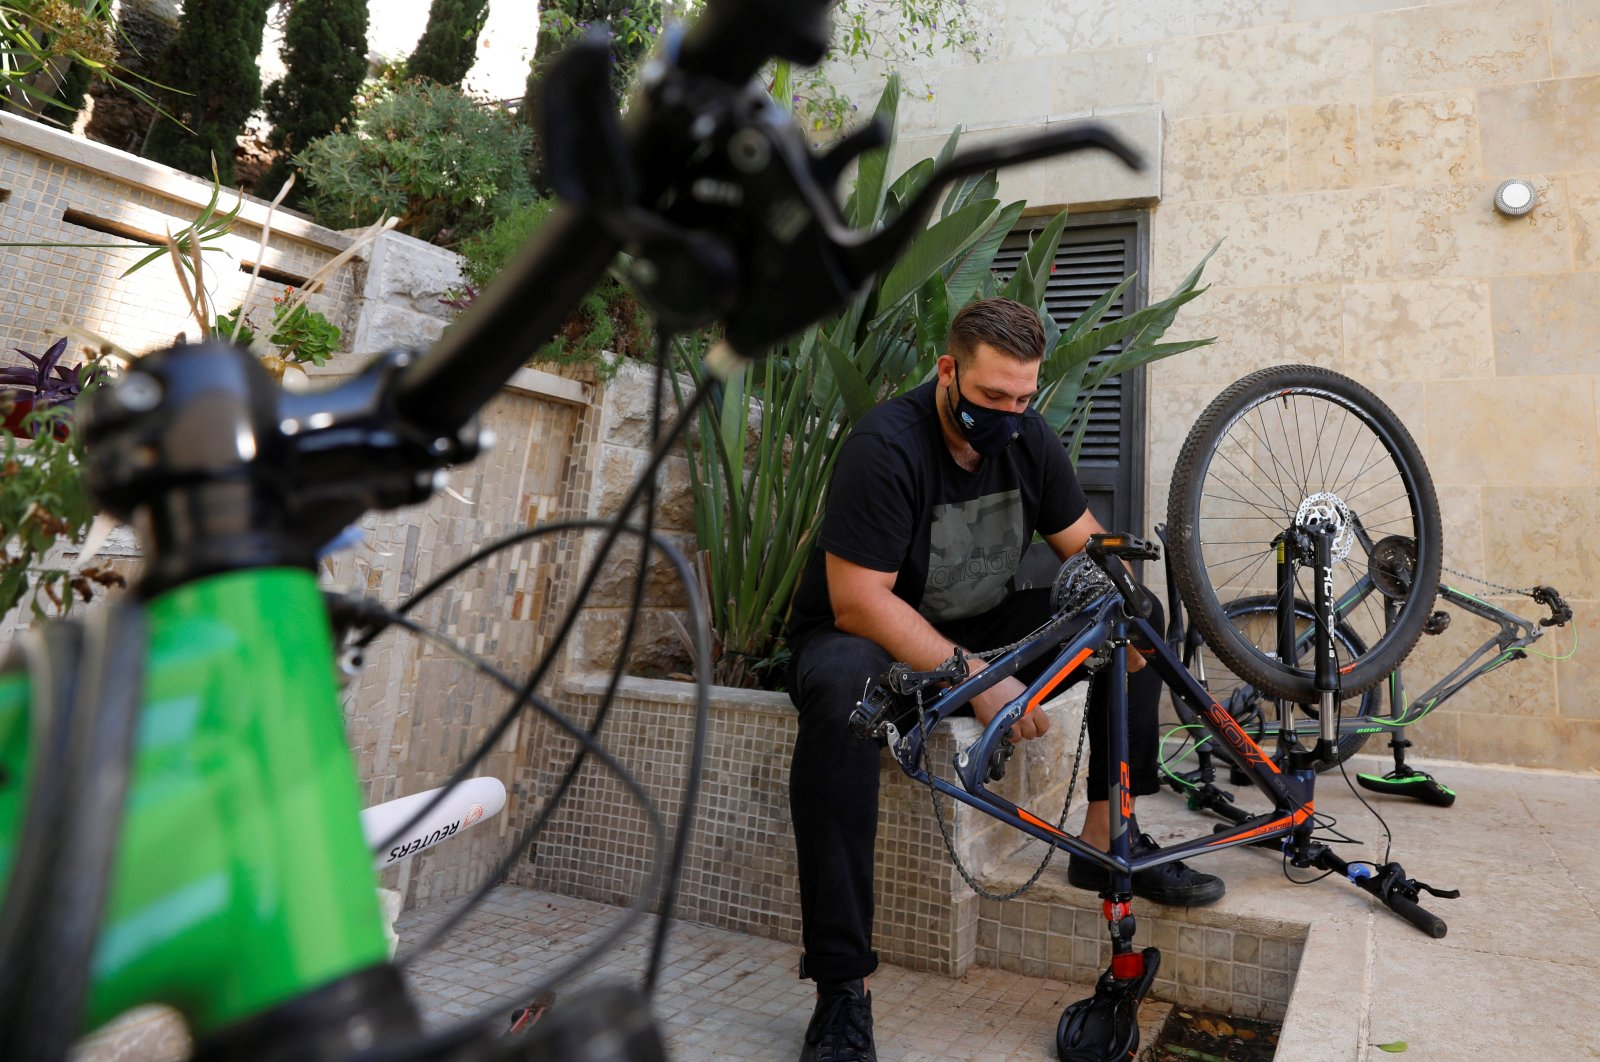 Palestinian cyclist Samer Kurdi inspects his damaged bicycle in Ramallah in the Israeli-occupied West Bank, July 21, 2020. (Reuters Photo)